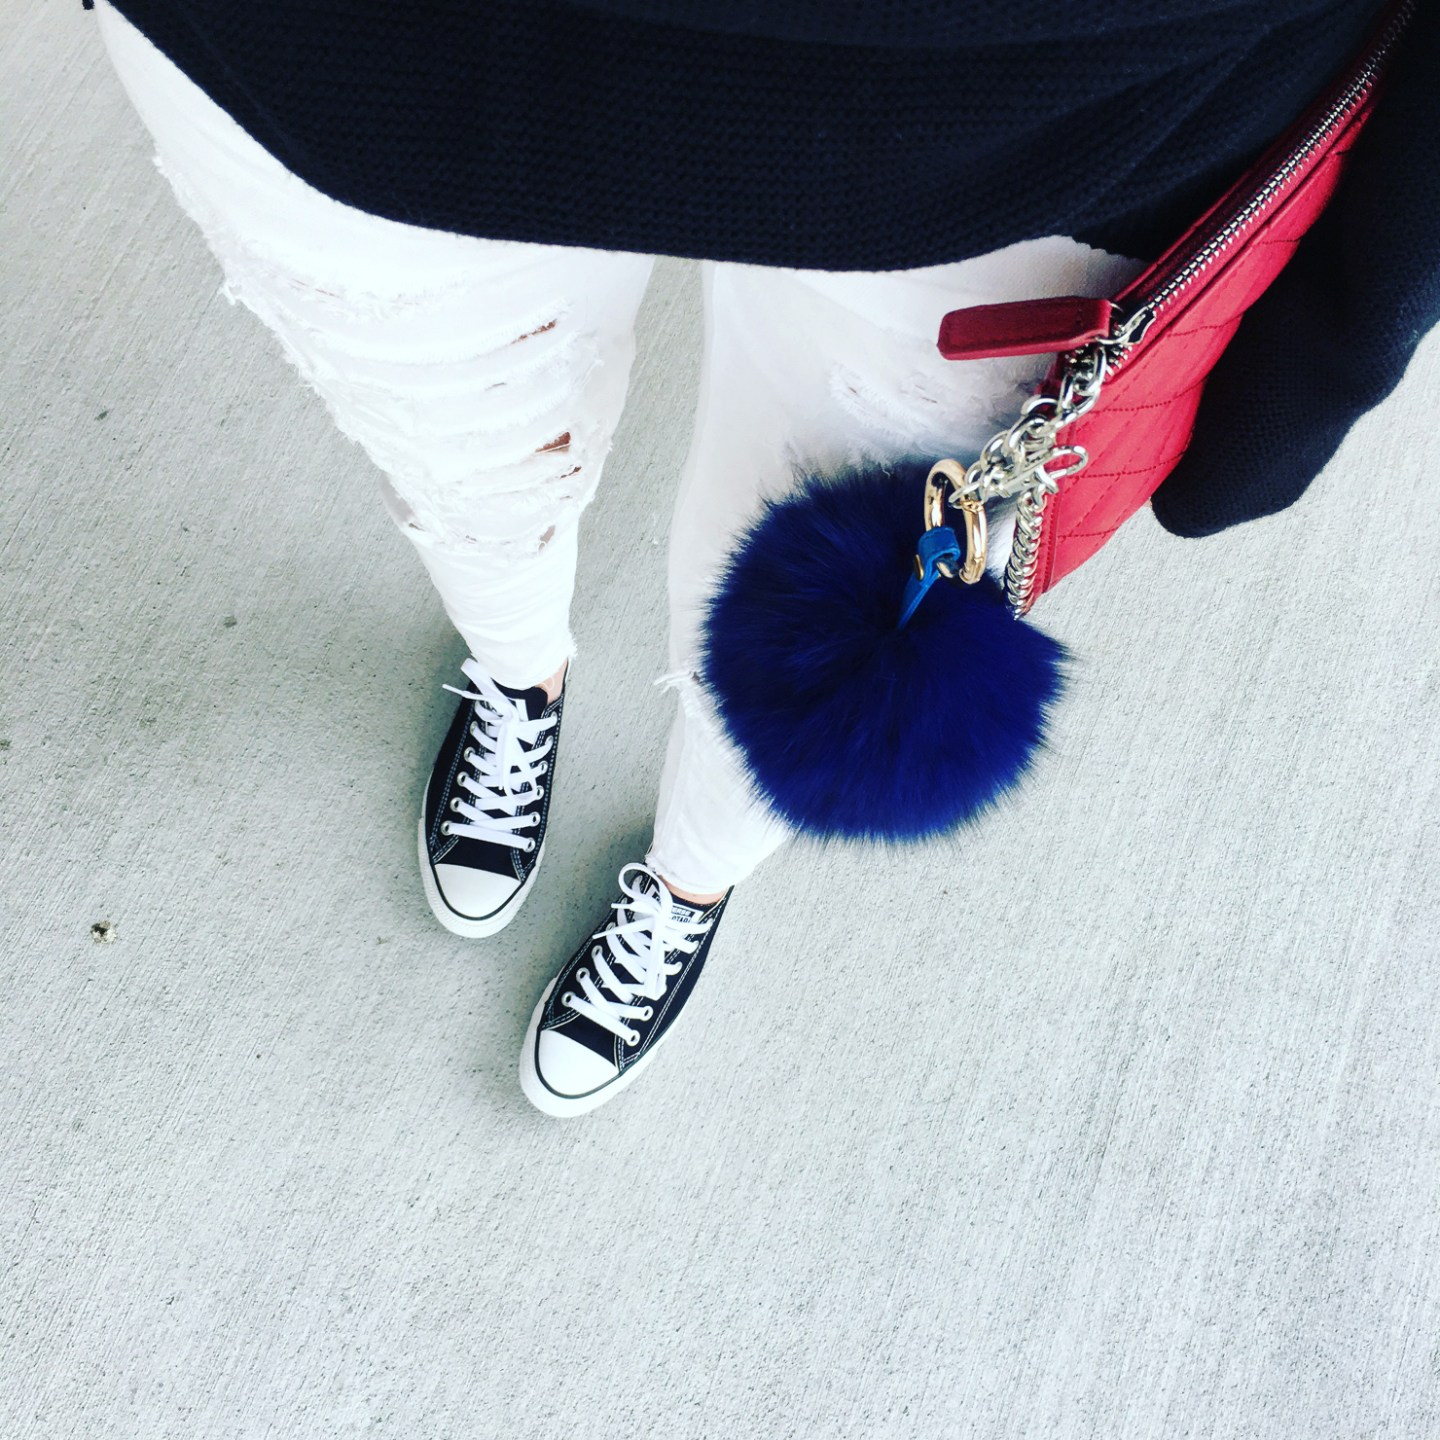 white distressed jeans, black converse, black chucks, blue fur bag pompom, red chanel look for less